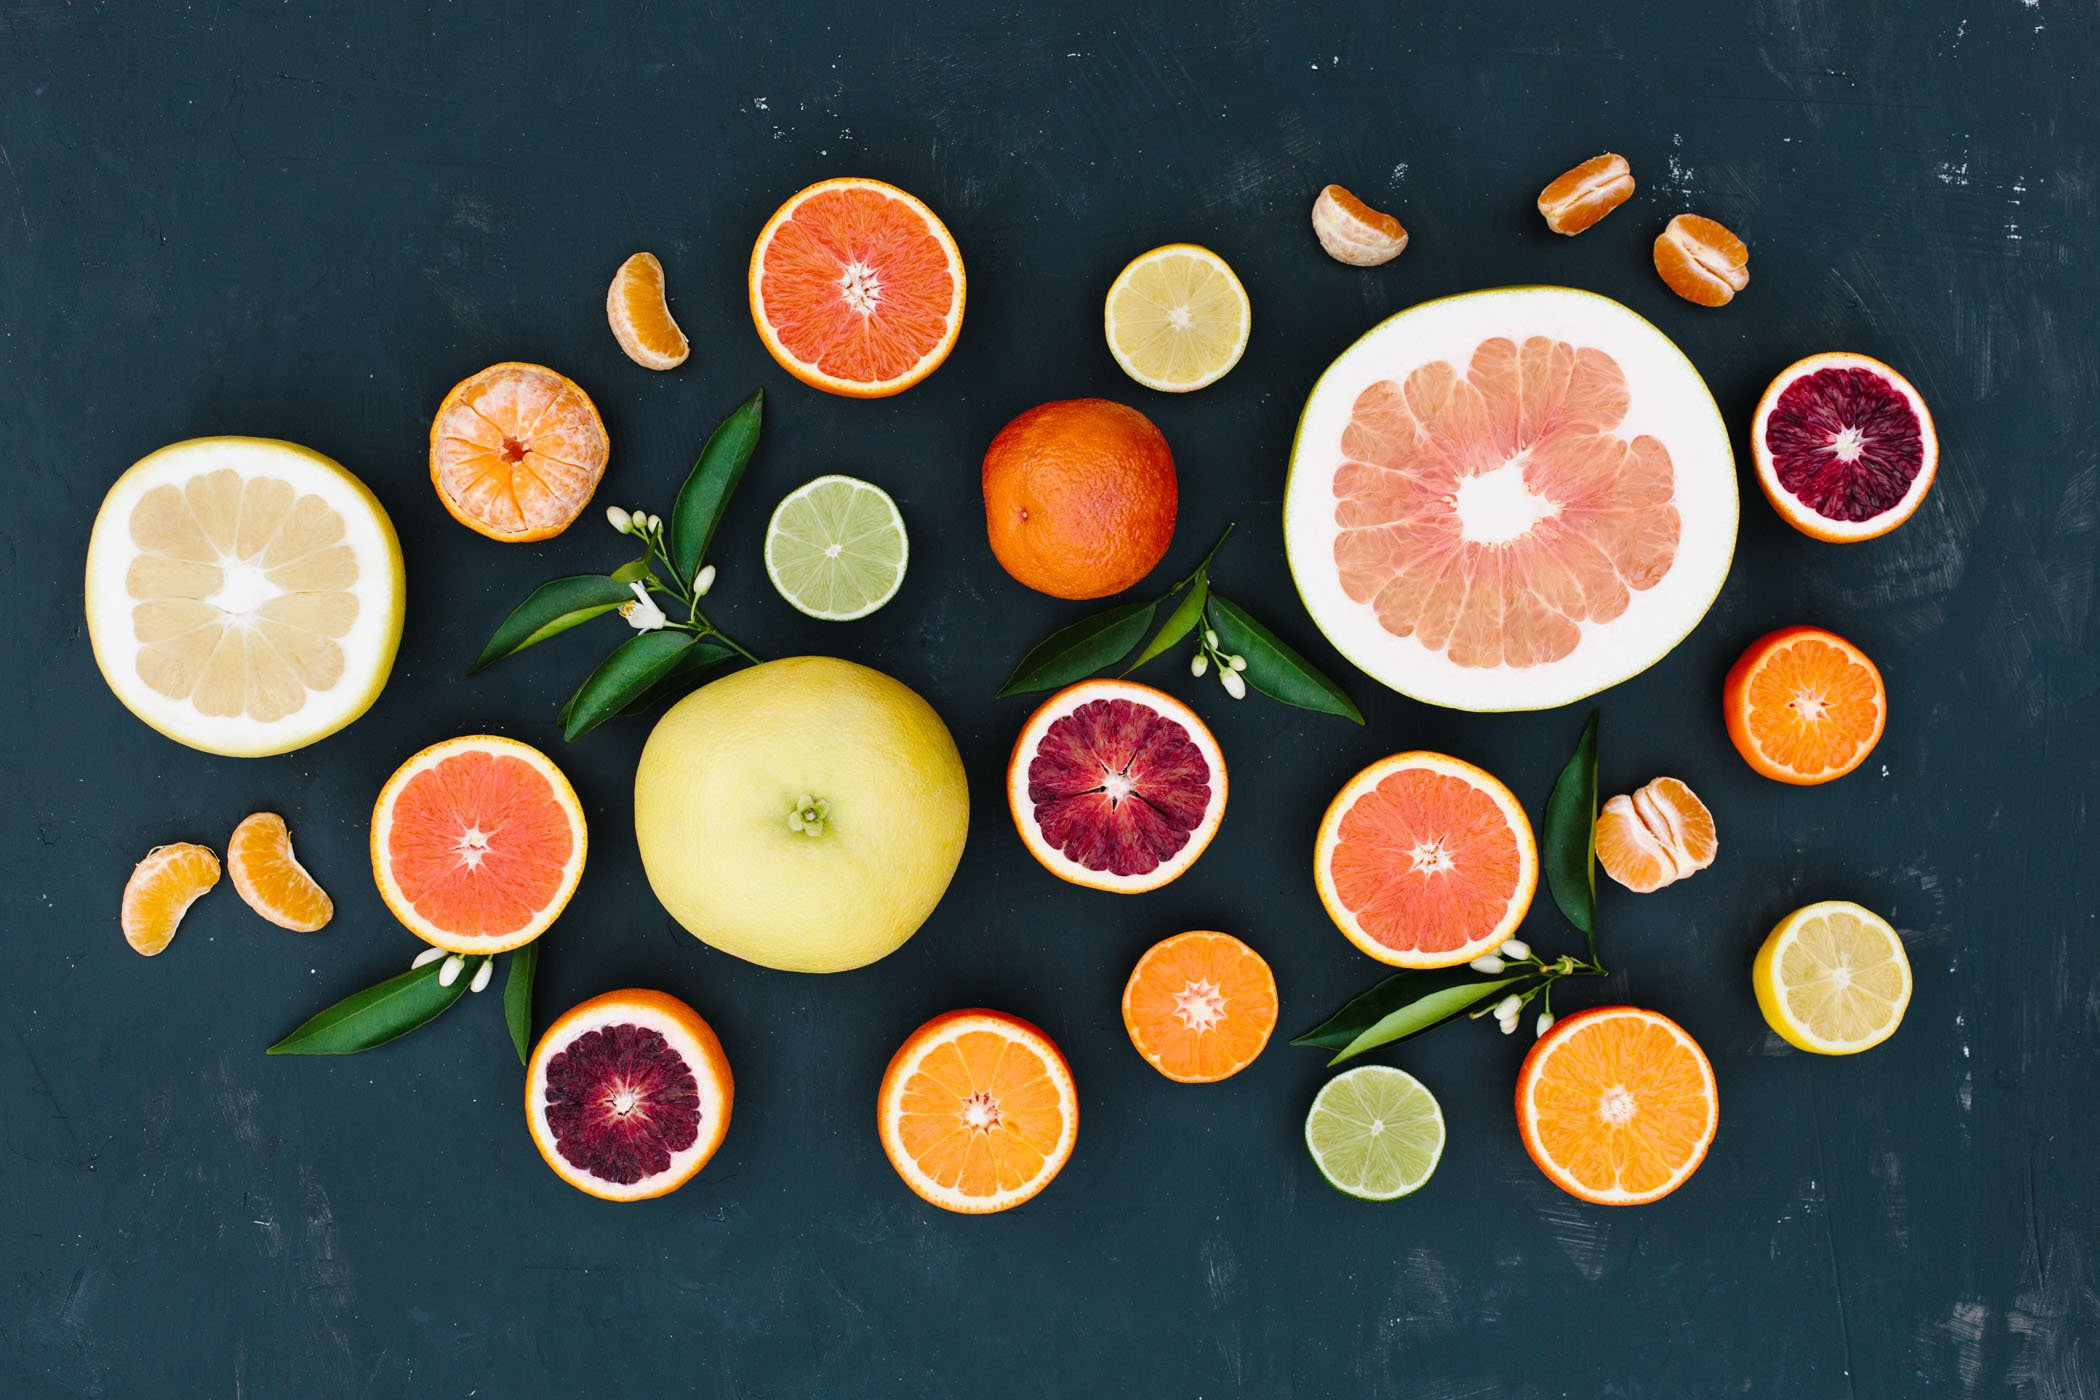 Photo by Mary Costa for Sunkist Growers